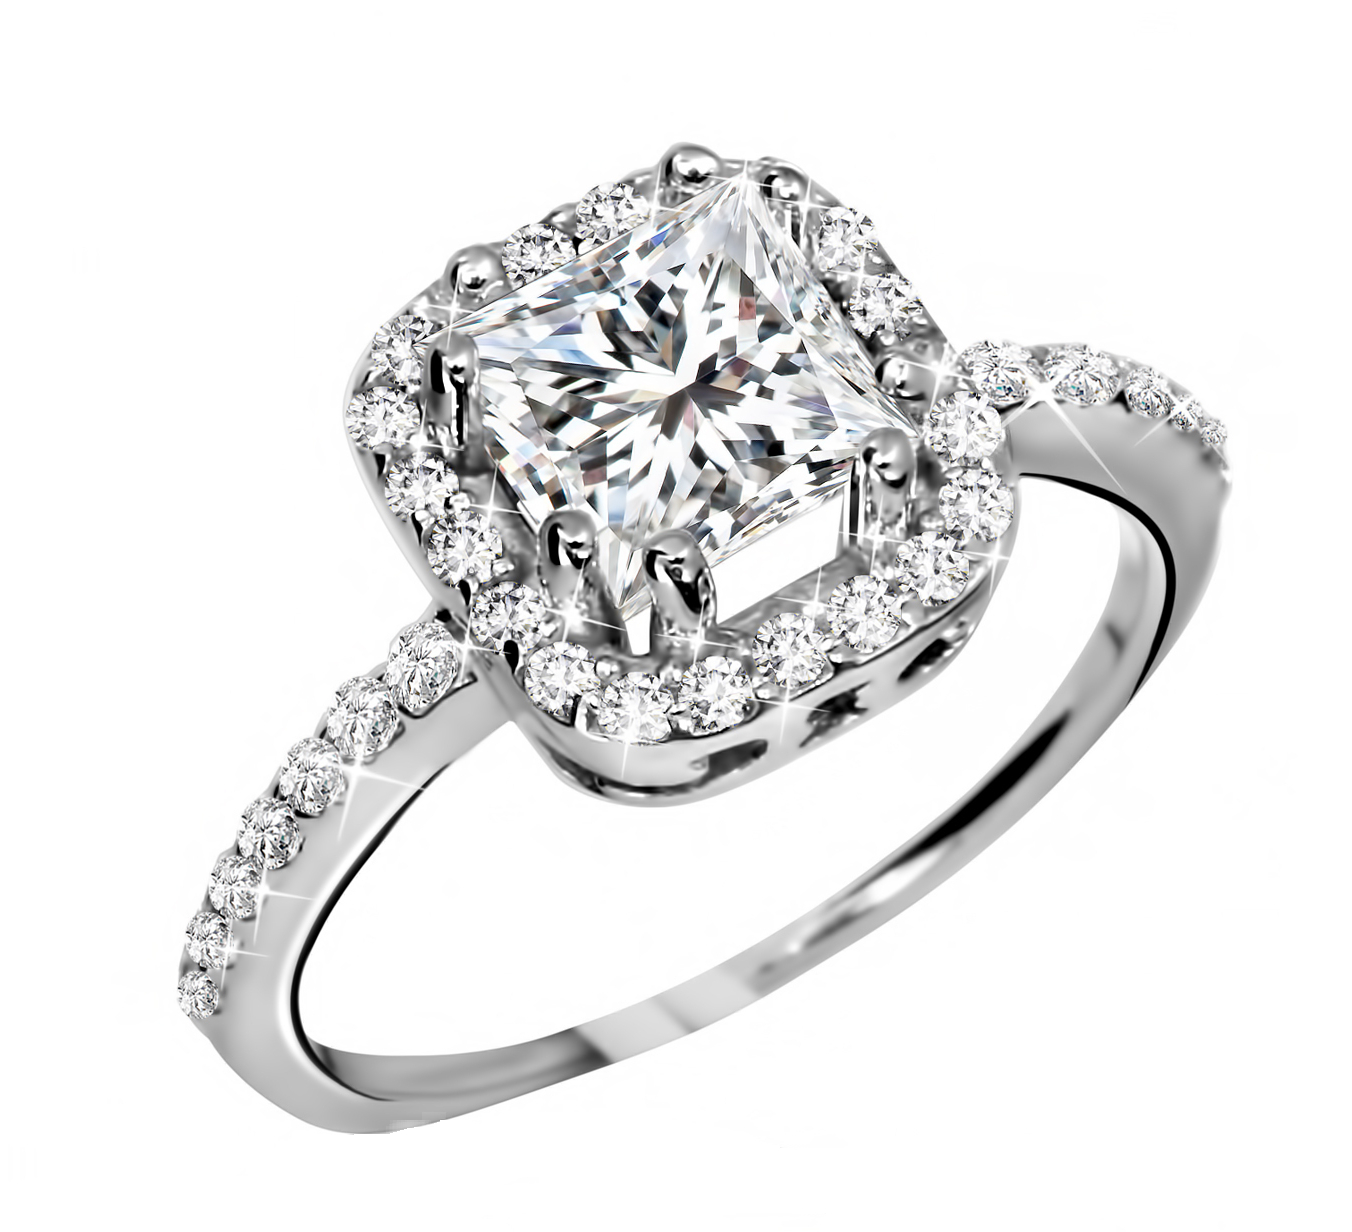 Vinca Specializes In Unique Custom Engagement Rings From Traditional Princesscut Diamond To A More Style Is Ready Help You Find Or: Were Find Wedding Rings At Websimilar.org